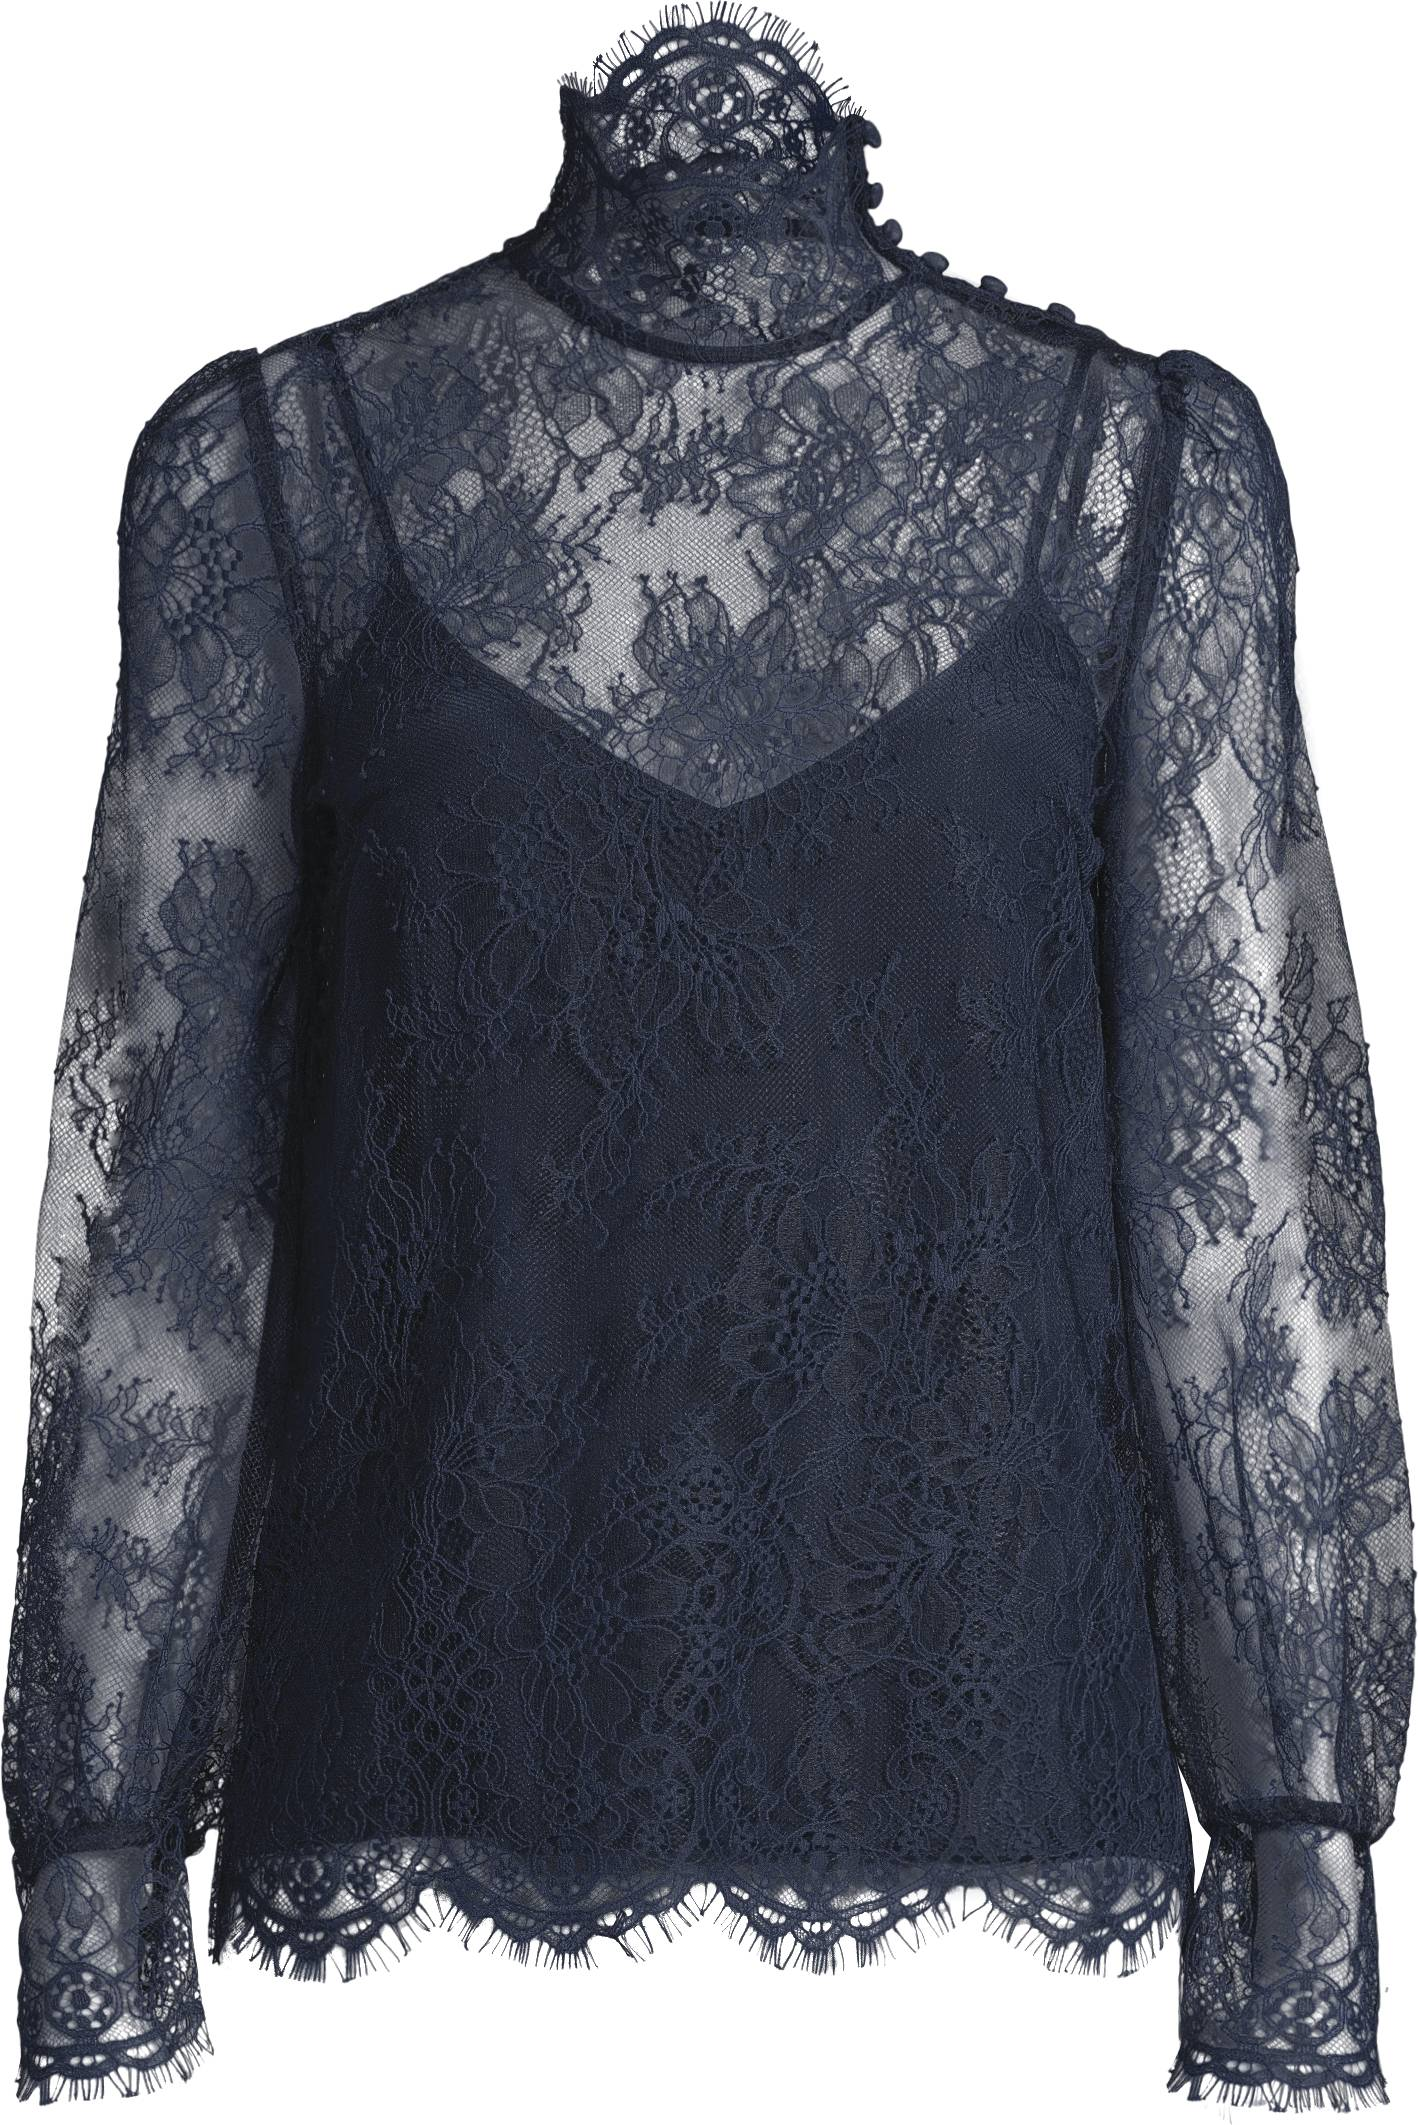 Blouse_lace_navy_navy_ghost.jpg